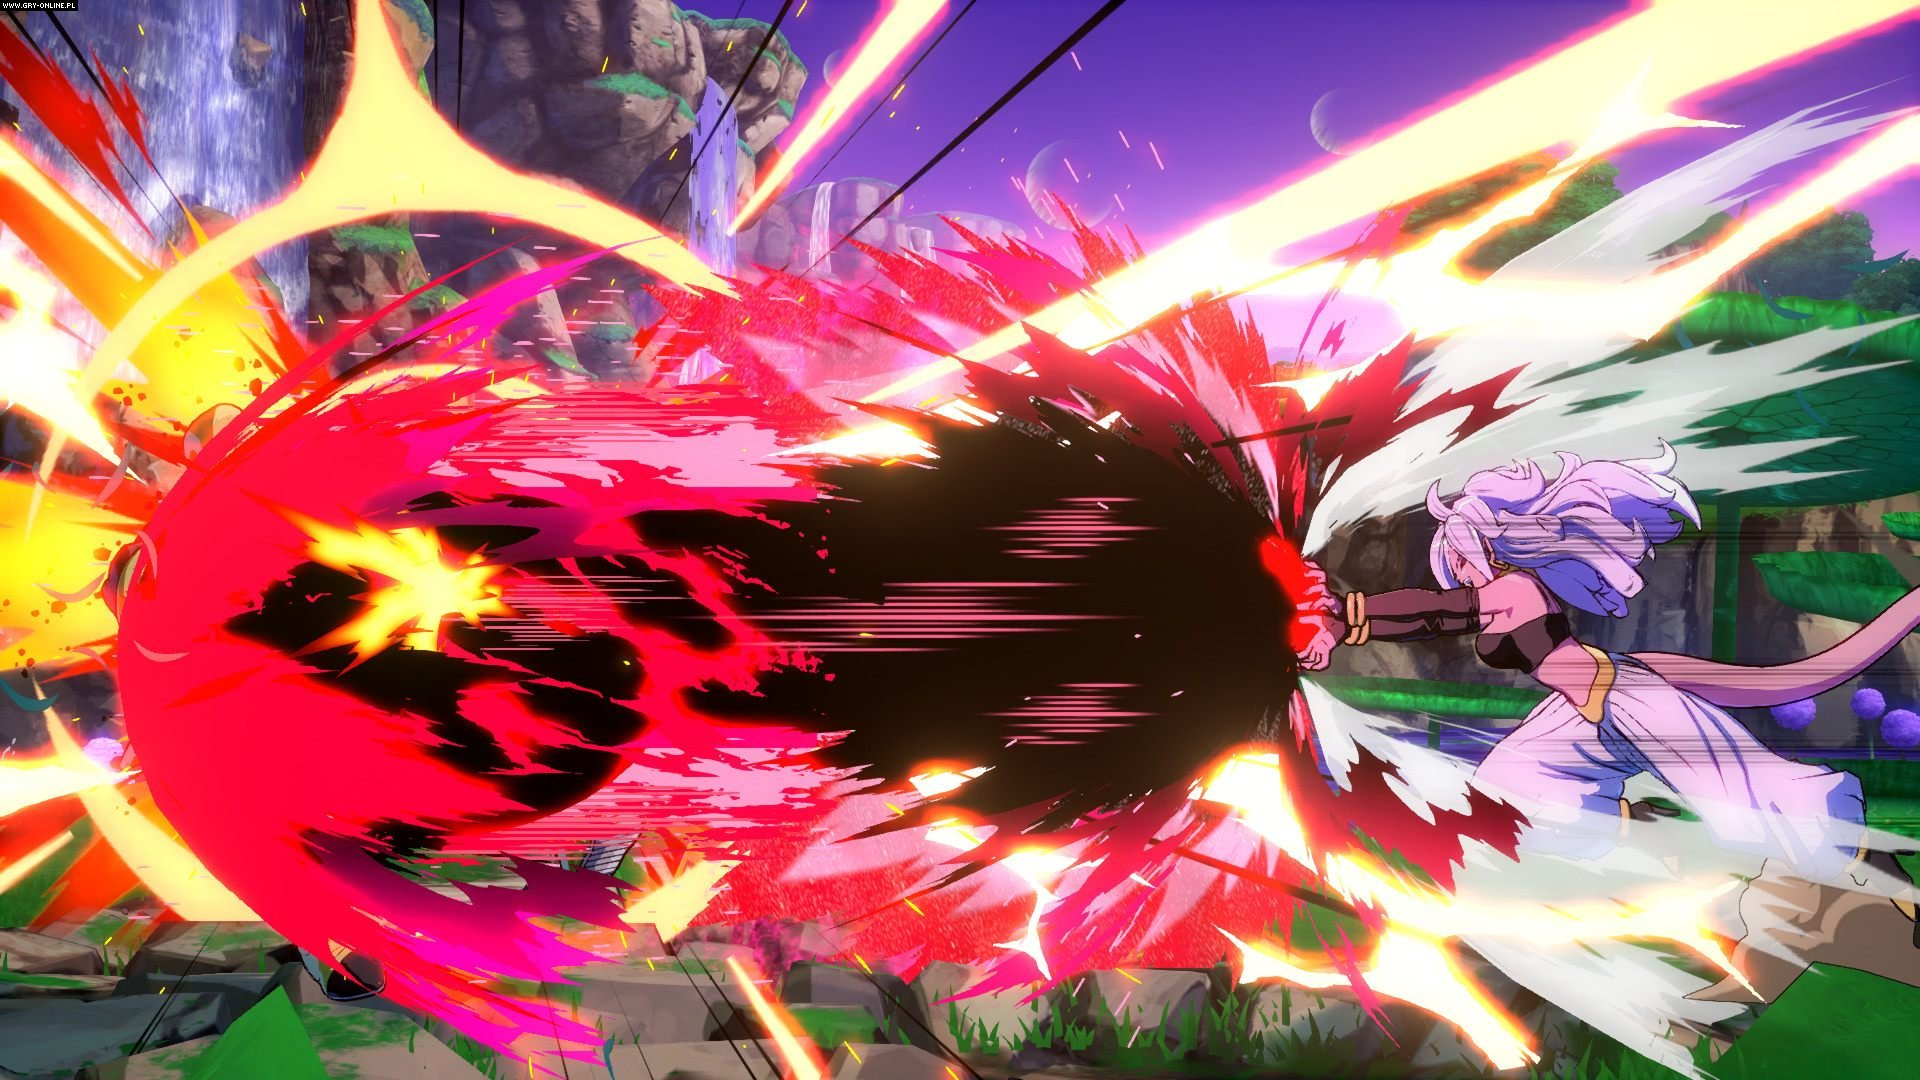 Dragon Ball FighterZ PC, PS4, XONE, Switch Gry Screen 78/230, Arc System Works, Bandai Namco Entertainment